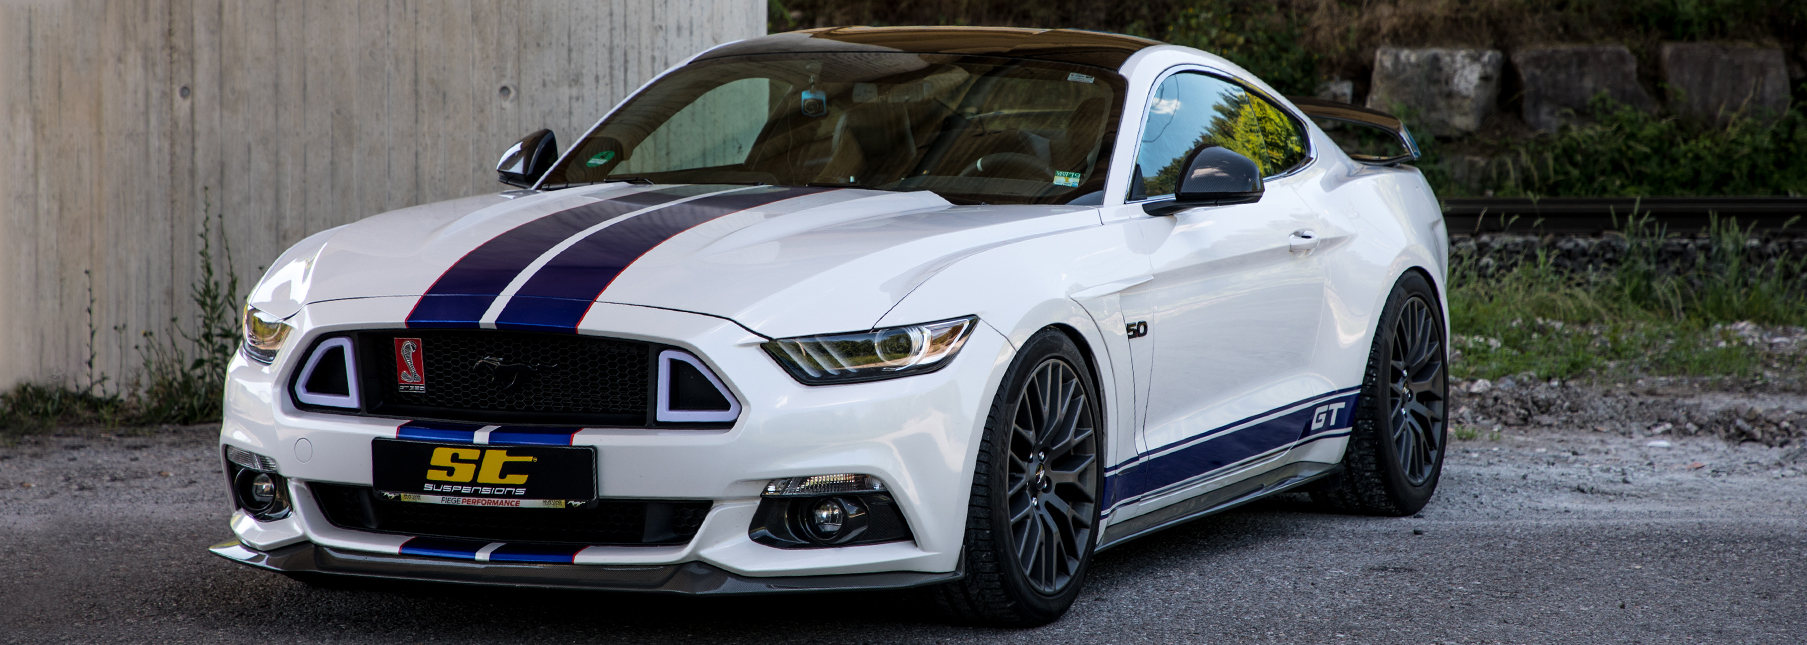 Ford Mustang LAE